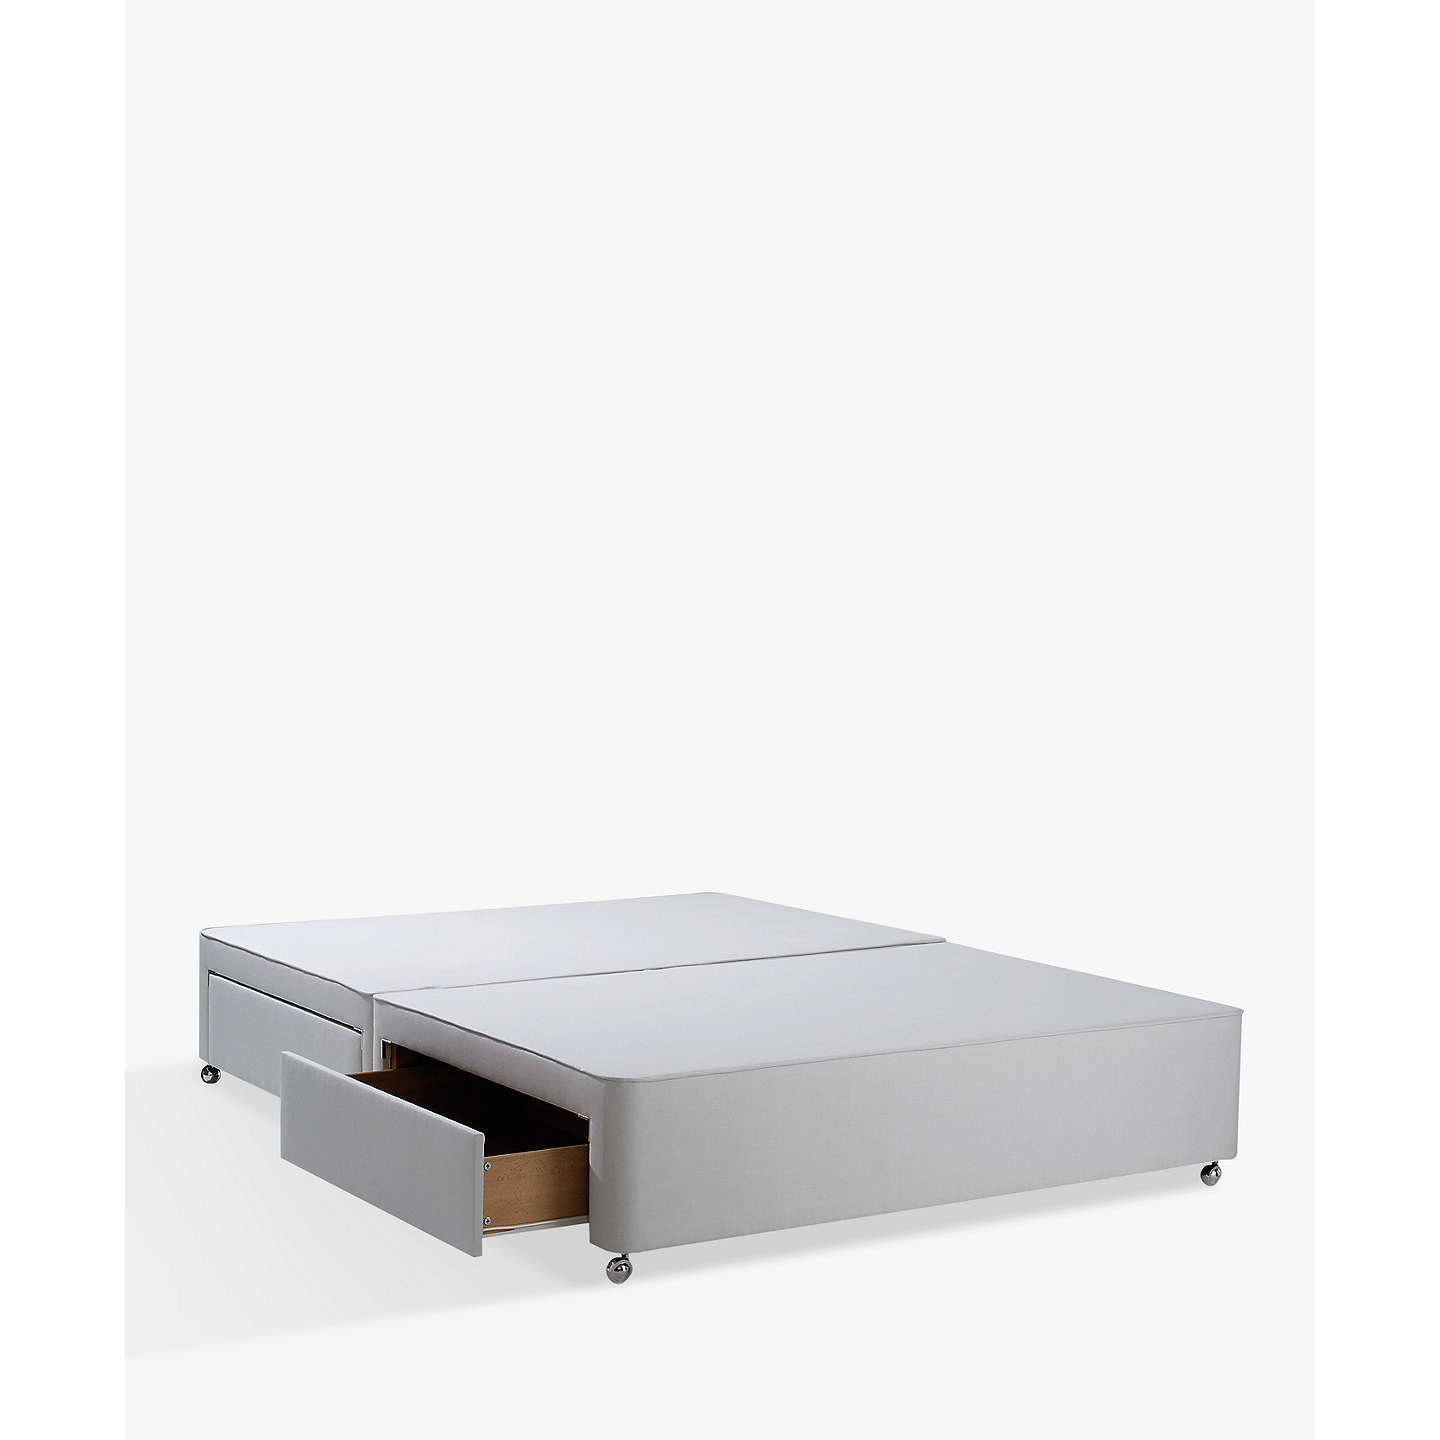 BuyJohn Lewis Non-Sprung Ortho Divan Storage Bed, Grey, King Size Online at johnlewis.com